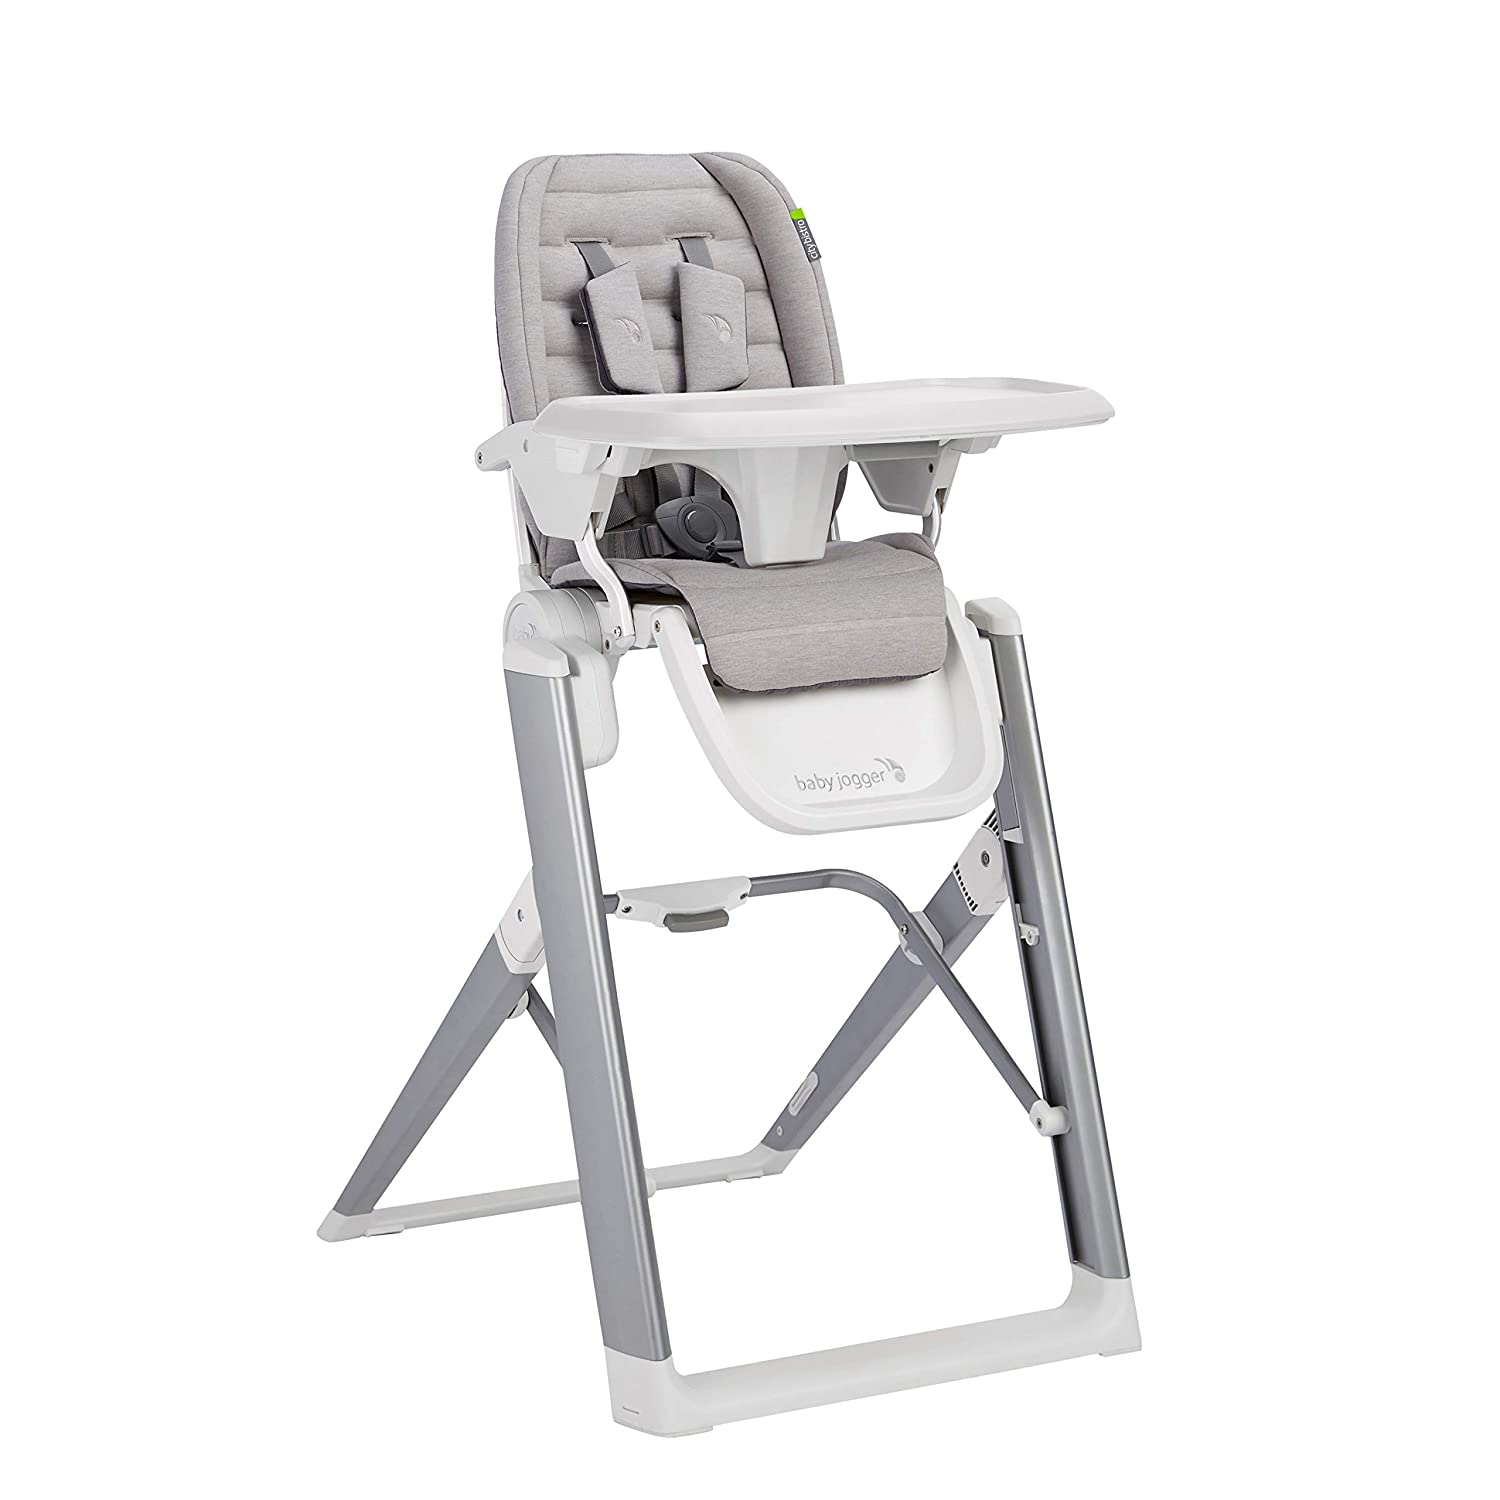 Chicago Mall Baby Jogger City Bistro Chair High 2021 spring and summer new Paloma